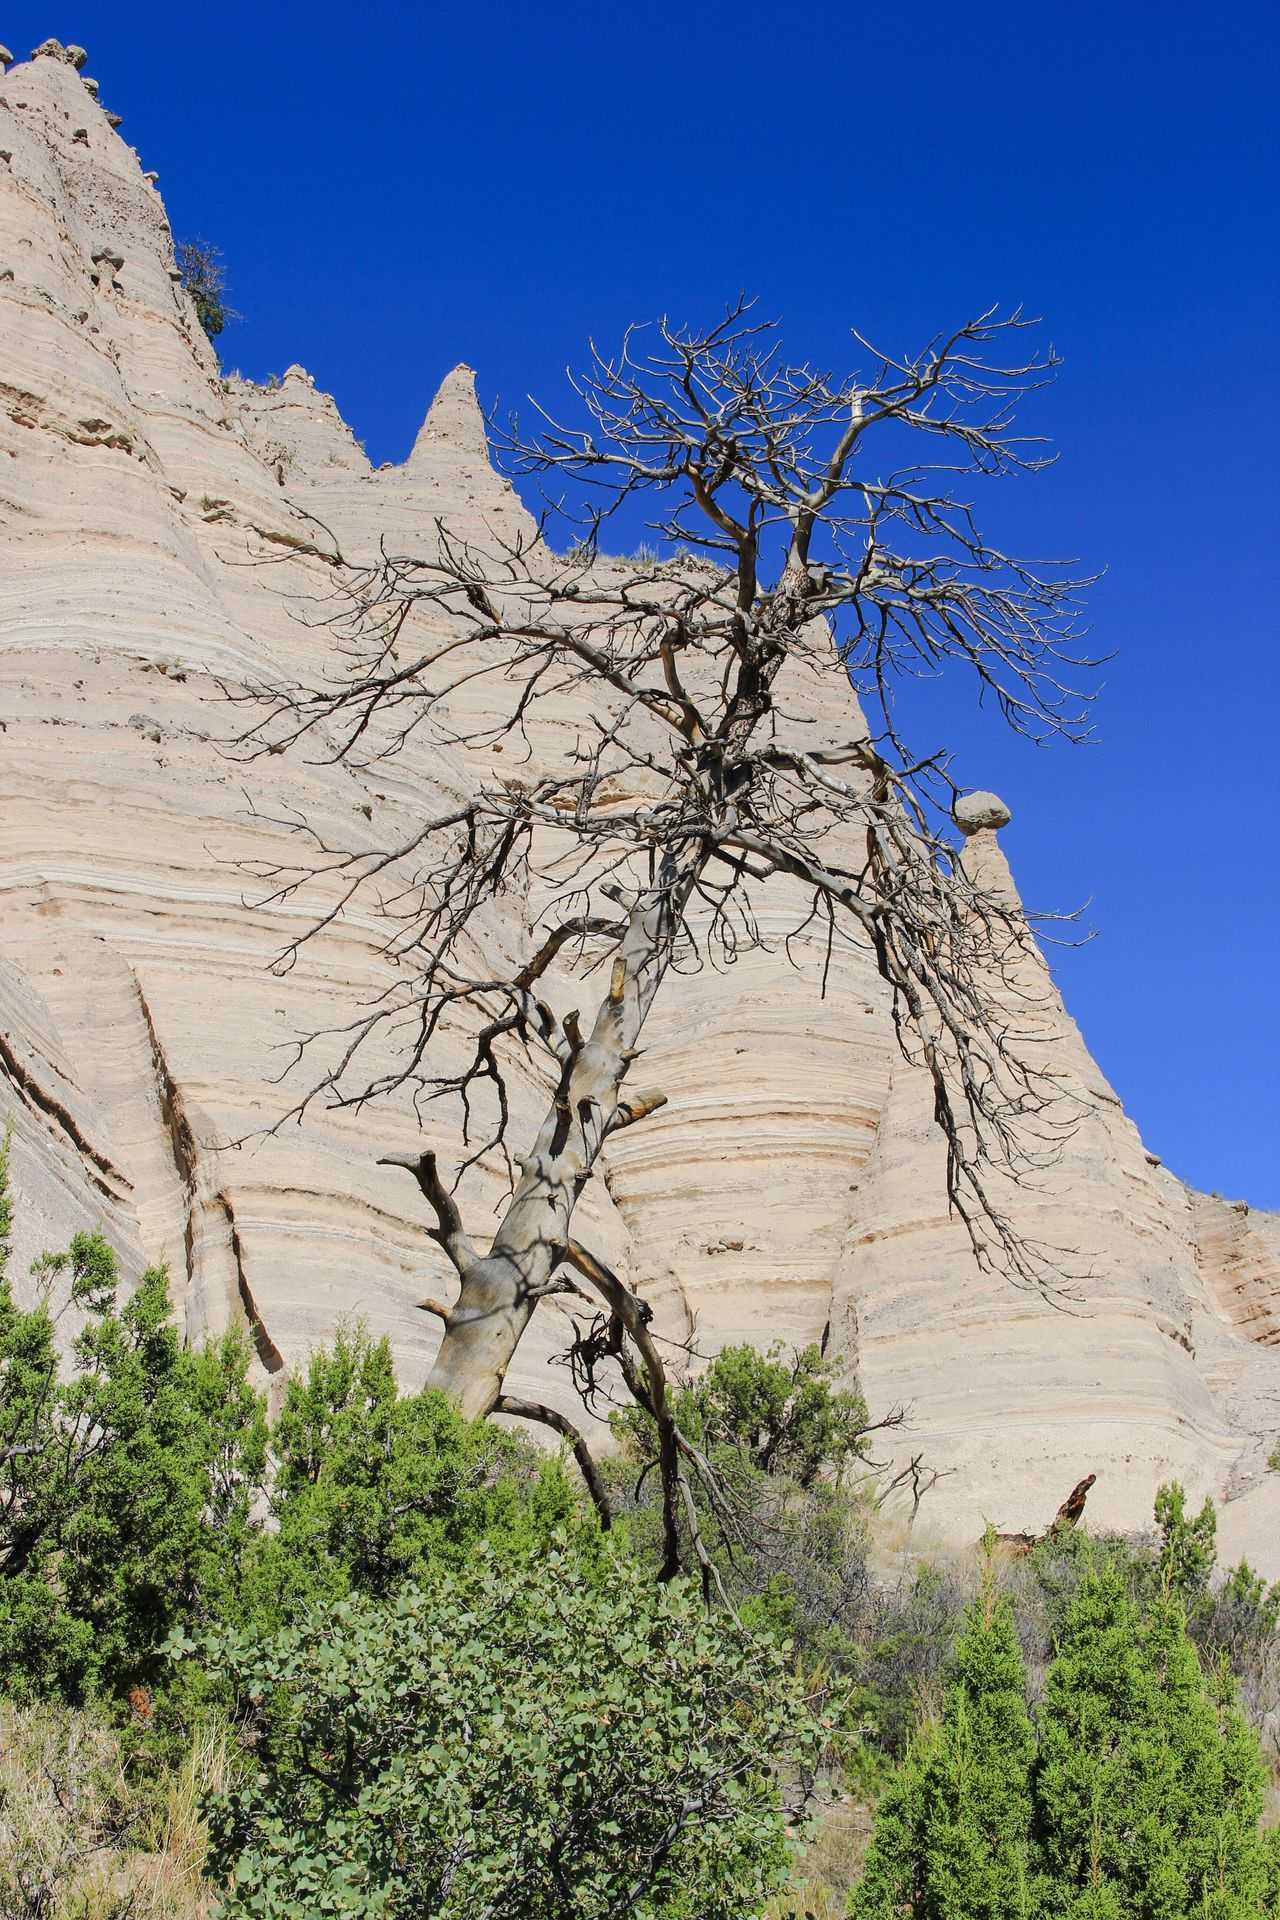 Clear Sky Bare Tree Blue Desert Landscape Tree Branch Arid Climate Tranquil Scene Tranquility Scenics Plant Solitude Nature Physical Geography Beauty In Nature Remote Growth Rock Formation Day Tourism Tourist Non-urban Scene Extreme Terrain Mountain